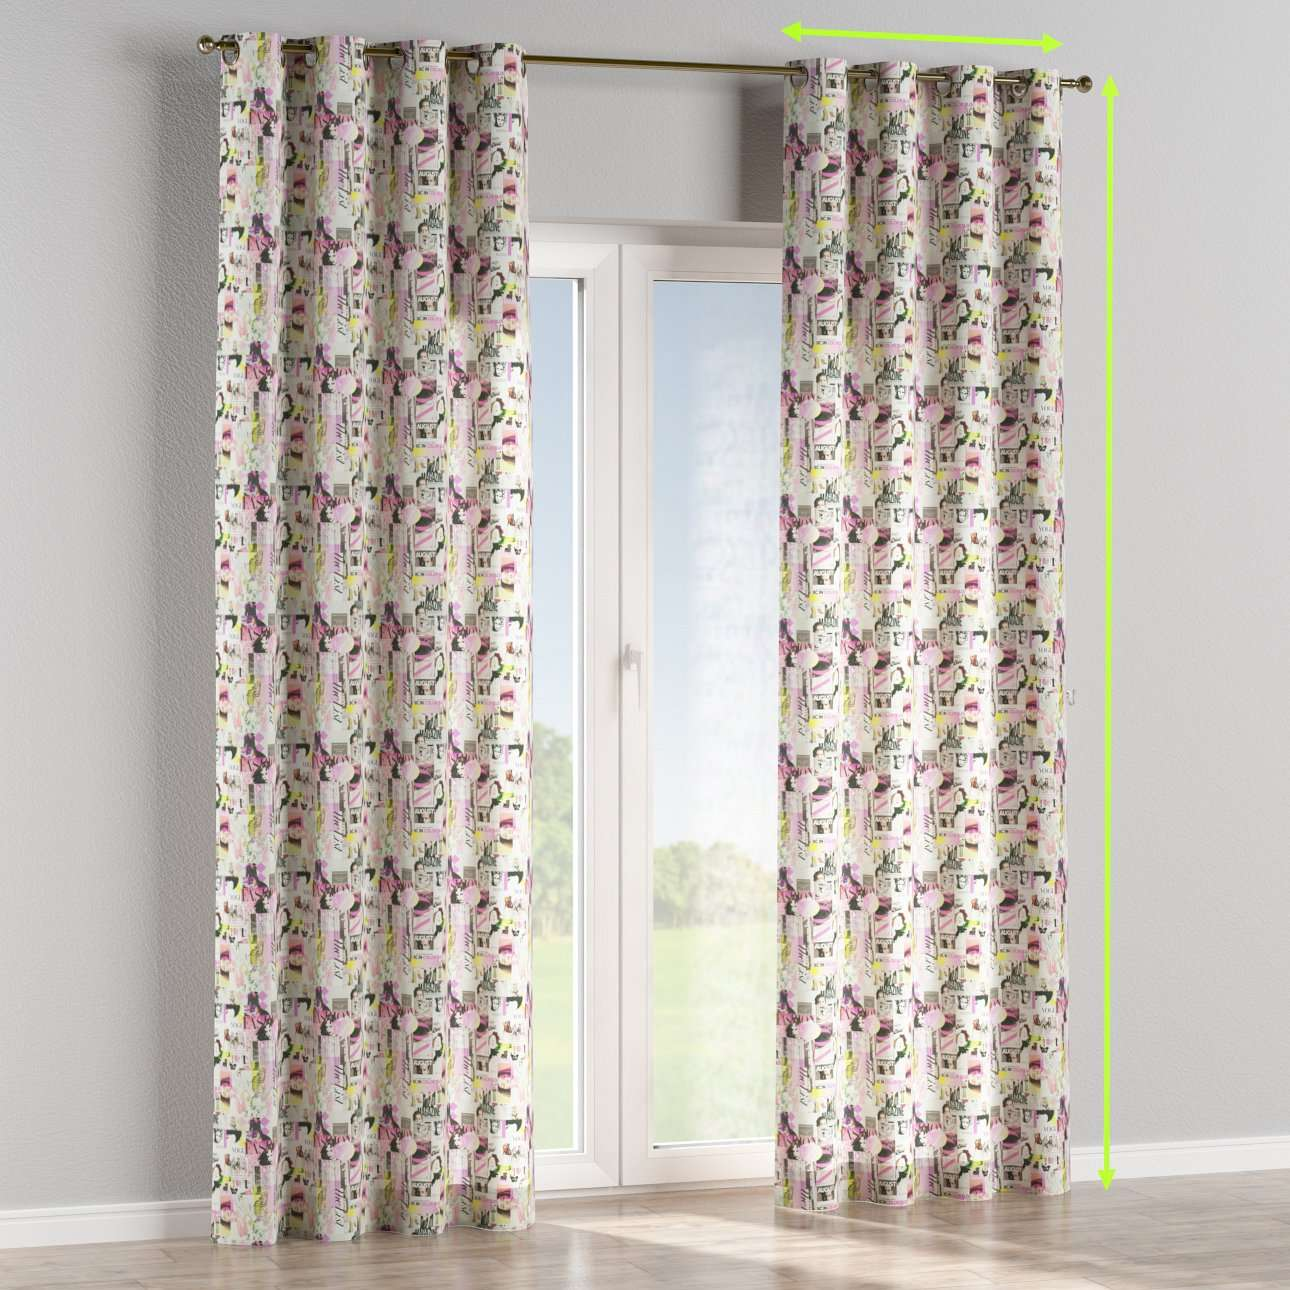 Eyelet curtains in collection Freestyle, fabric: 135-15